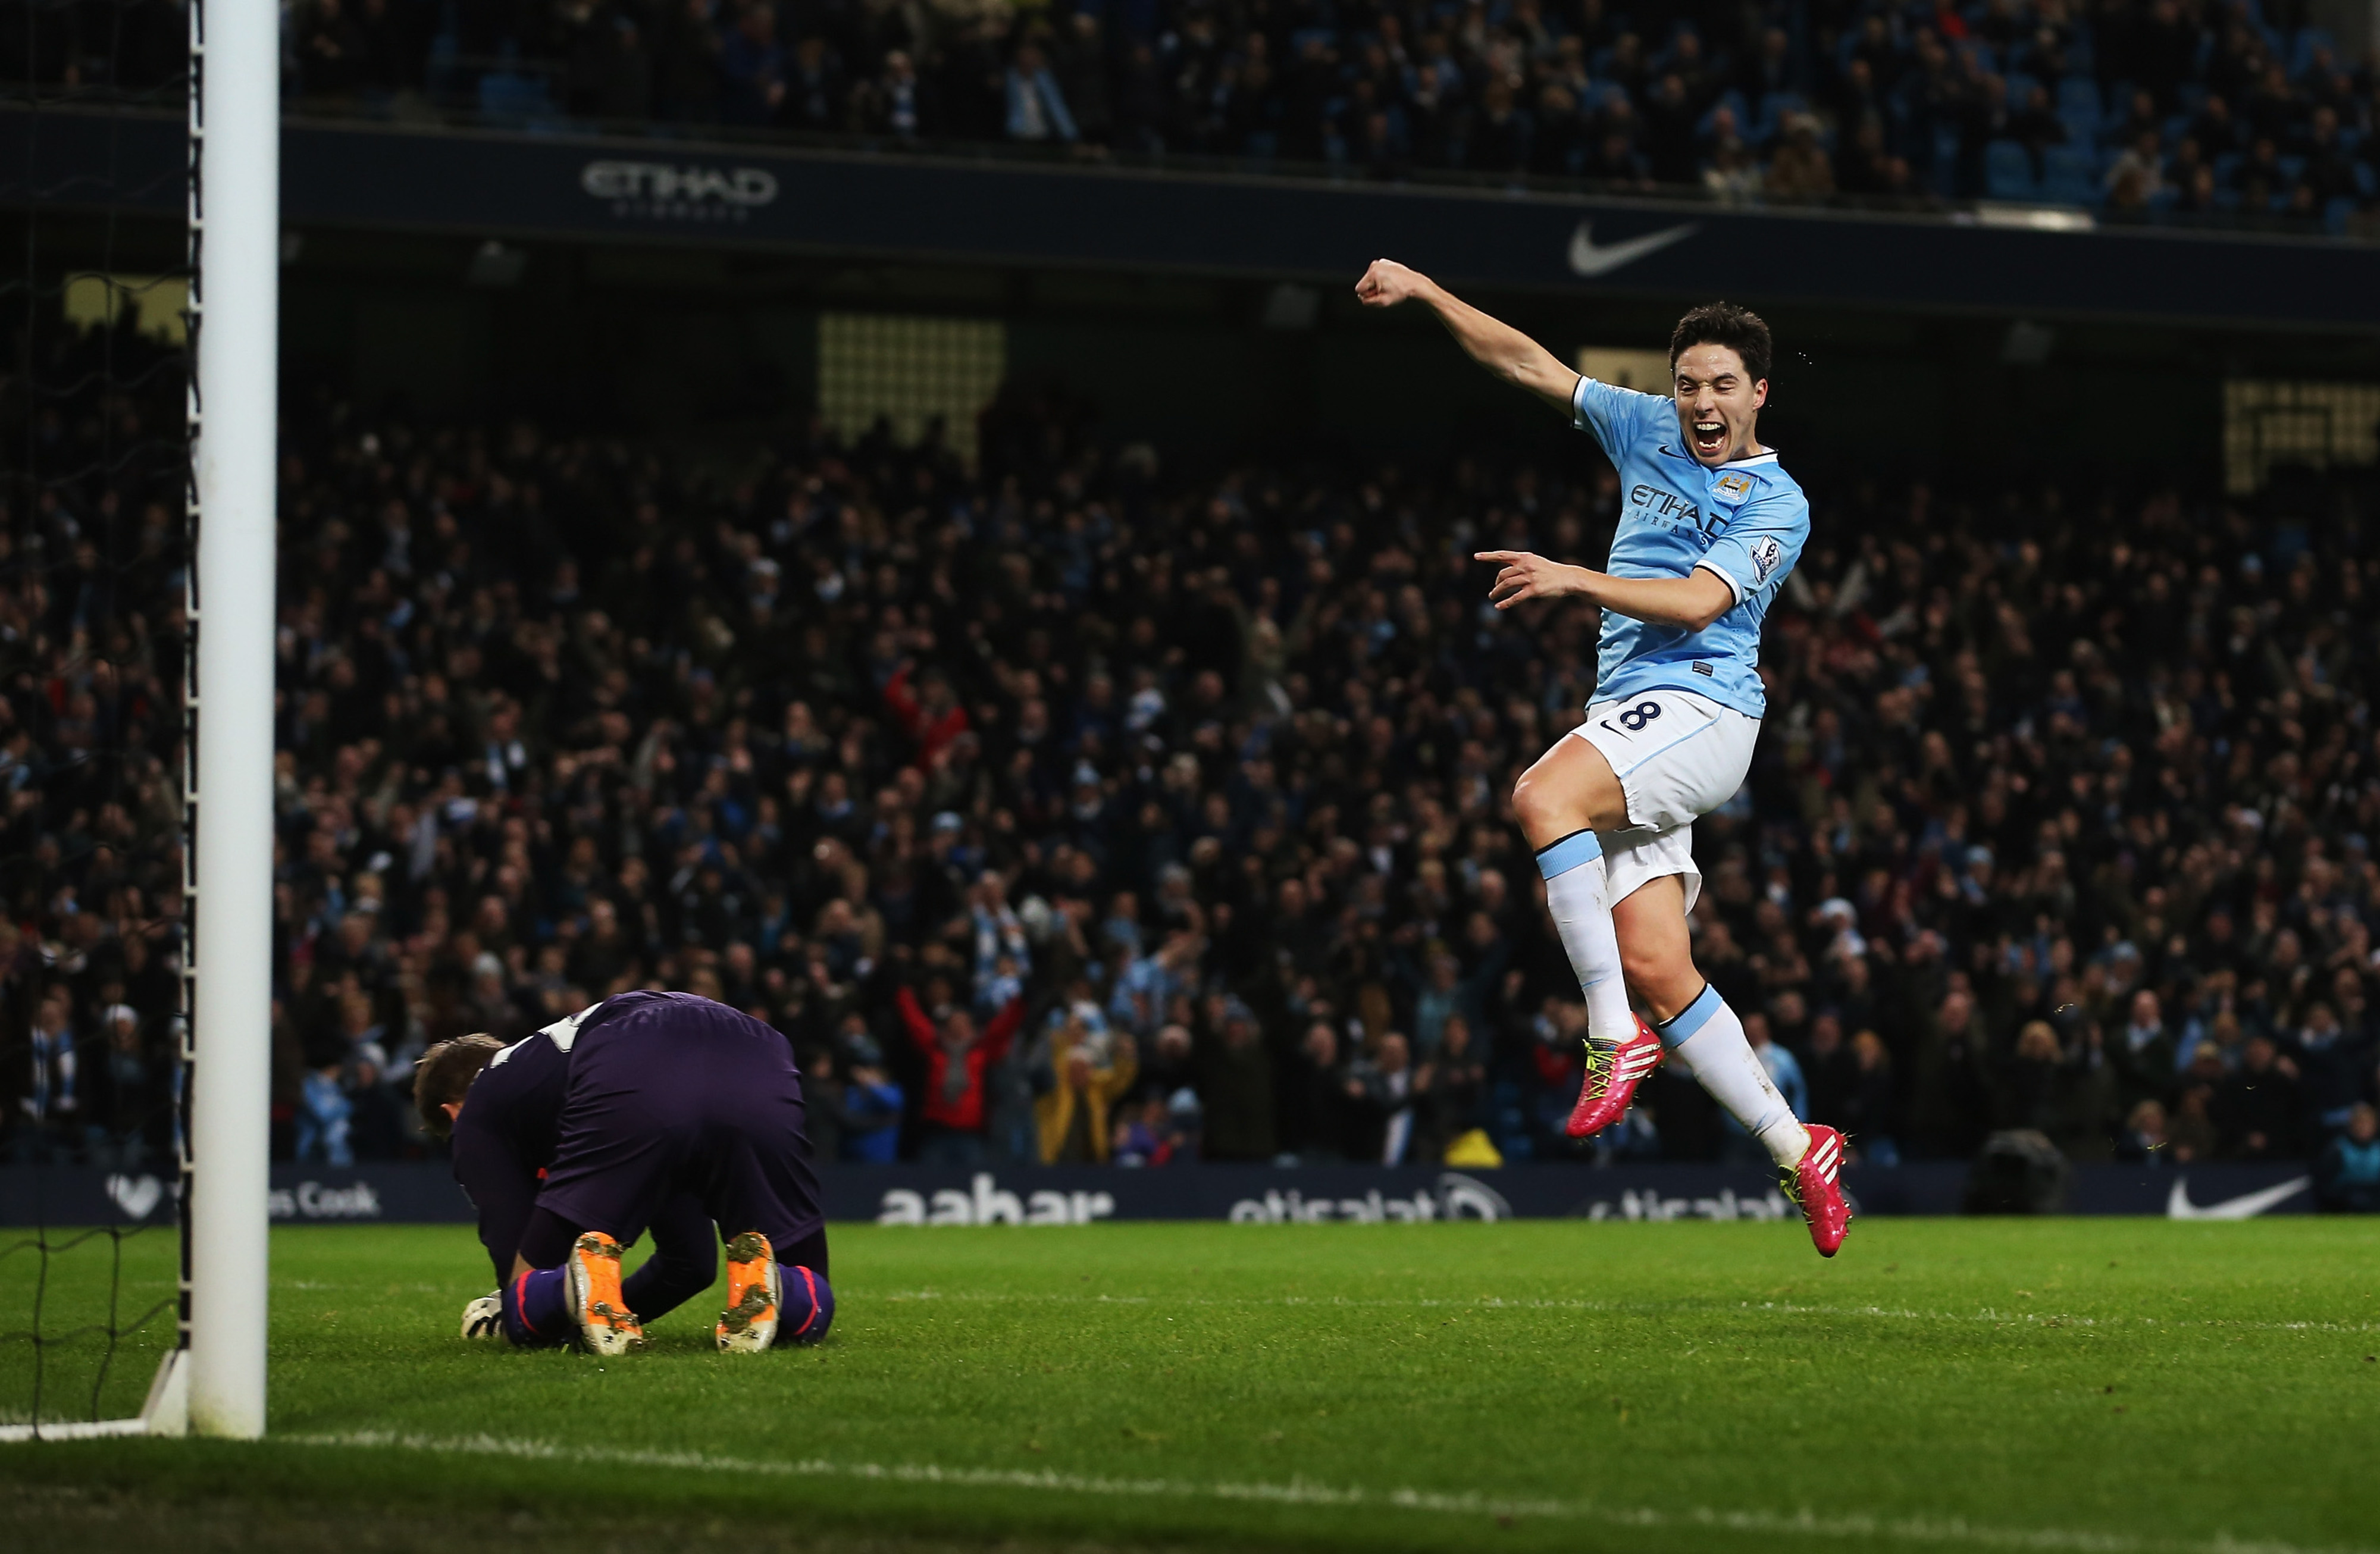 Luis Suarez sensational, but short on help in loss at Manchester City